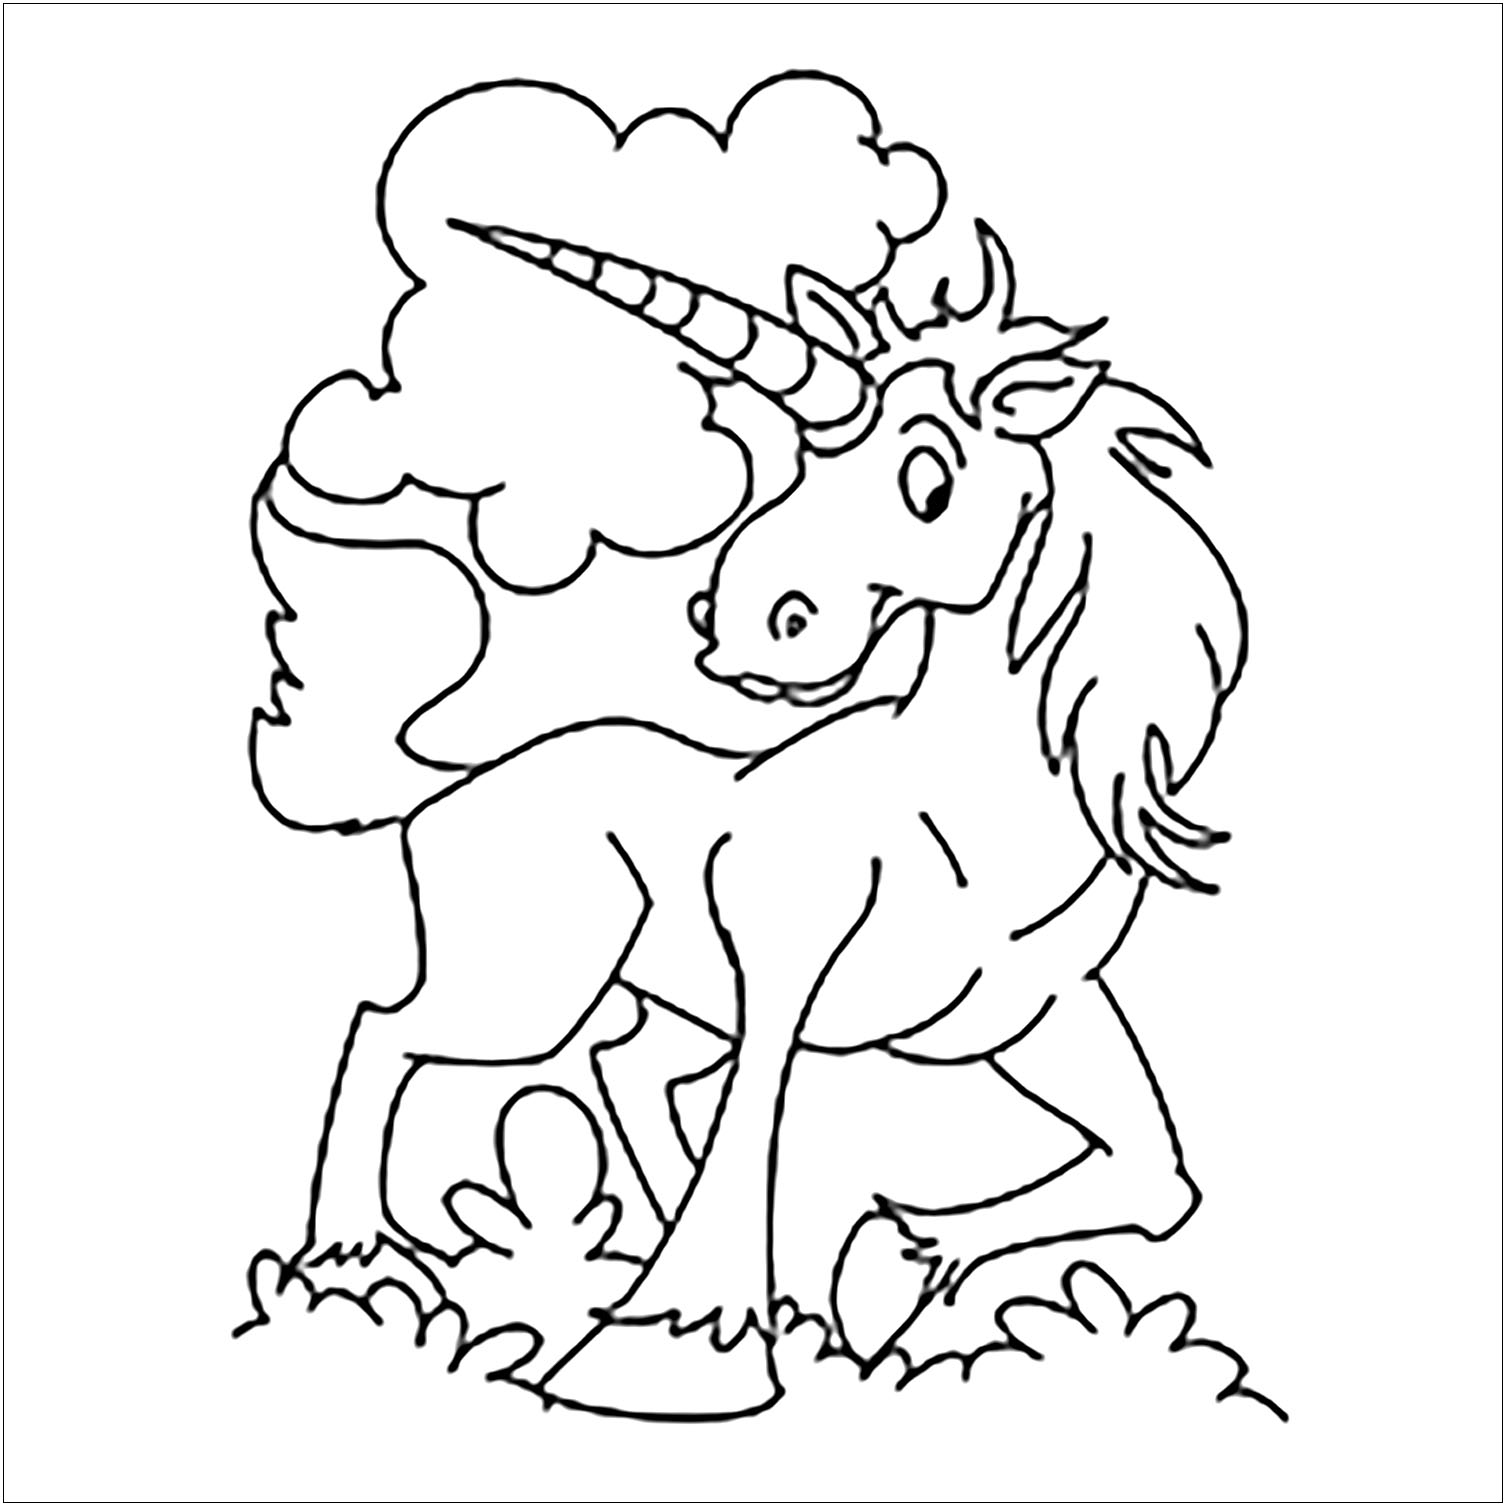 Unicorns coloring page with few details for kids